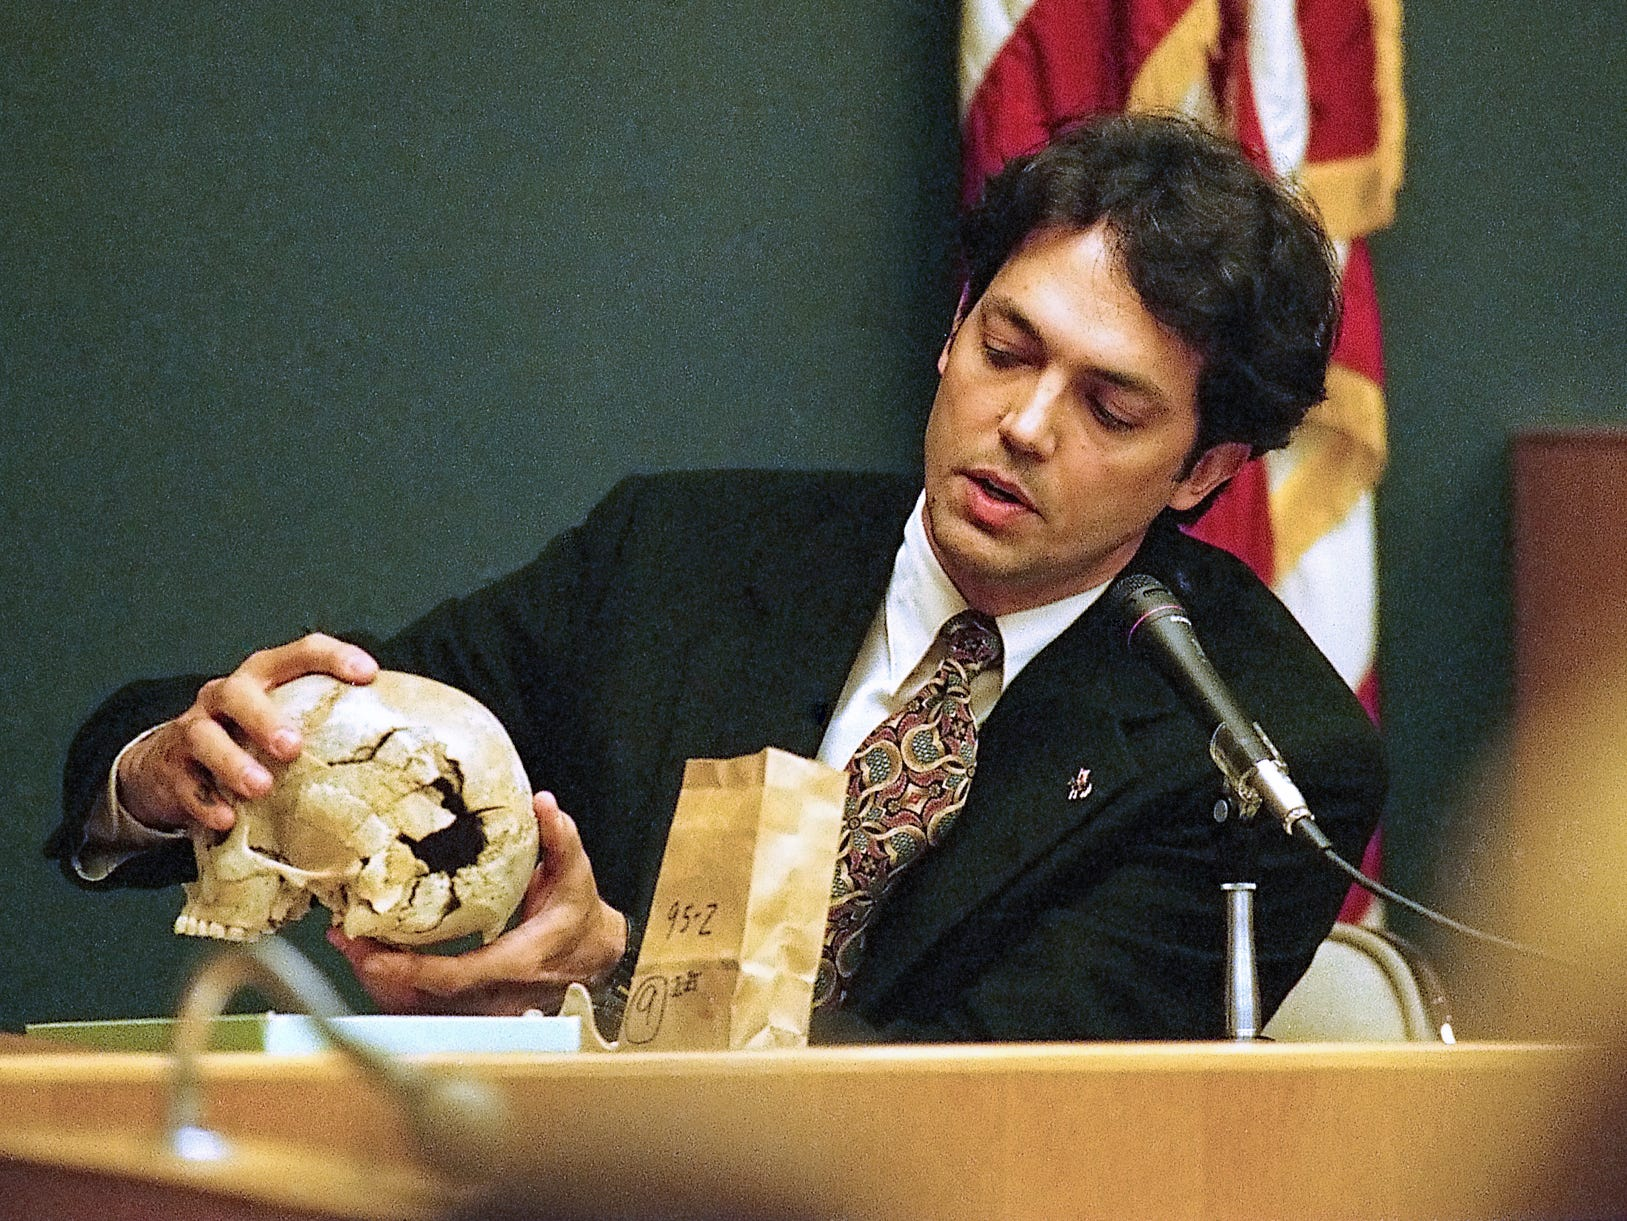 University of Tennessee forensic anthropologist Dr. Murray Marks testifies about the wounds to Colleen A. Slemmer's skull during Christa Gail Pike's murder trial in Knox County Criminal Court on March 25, 1996.